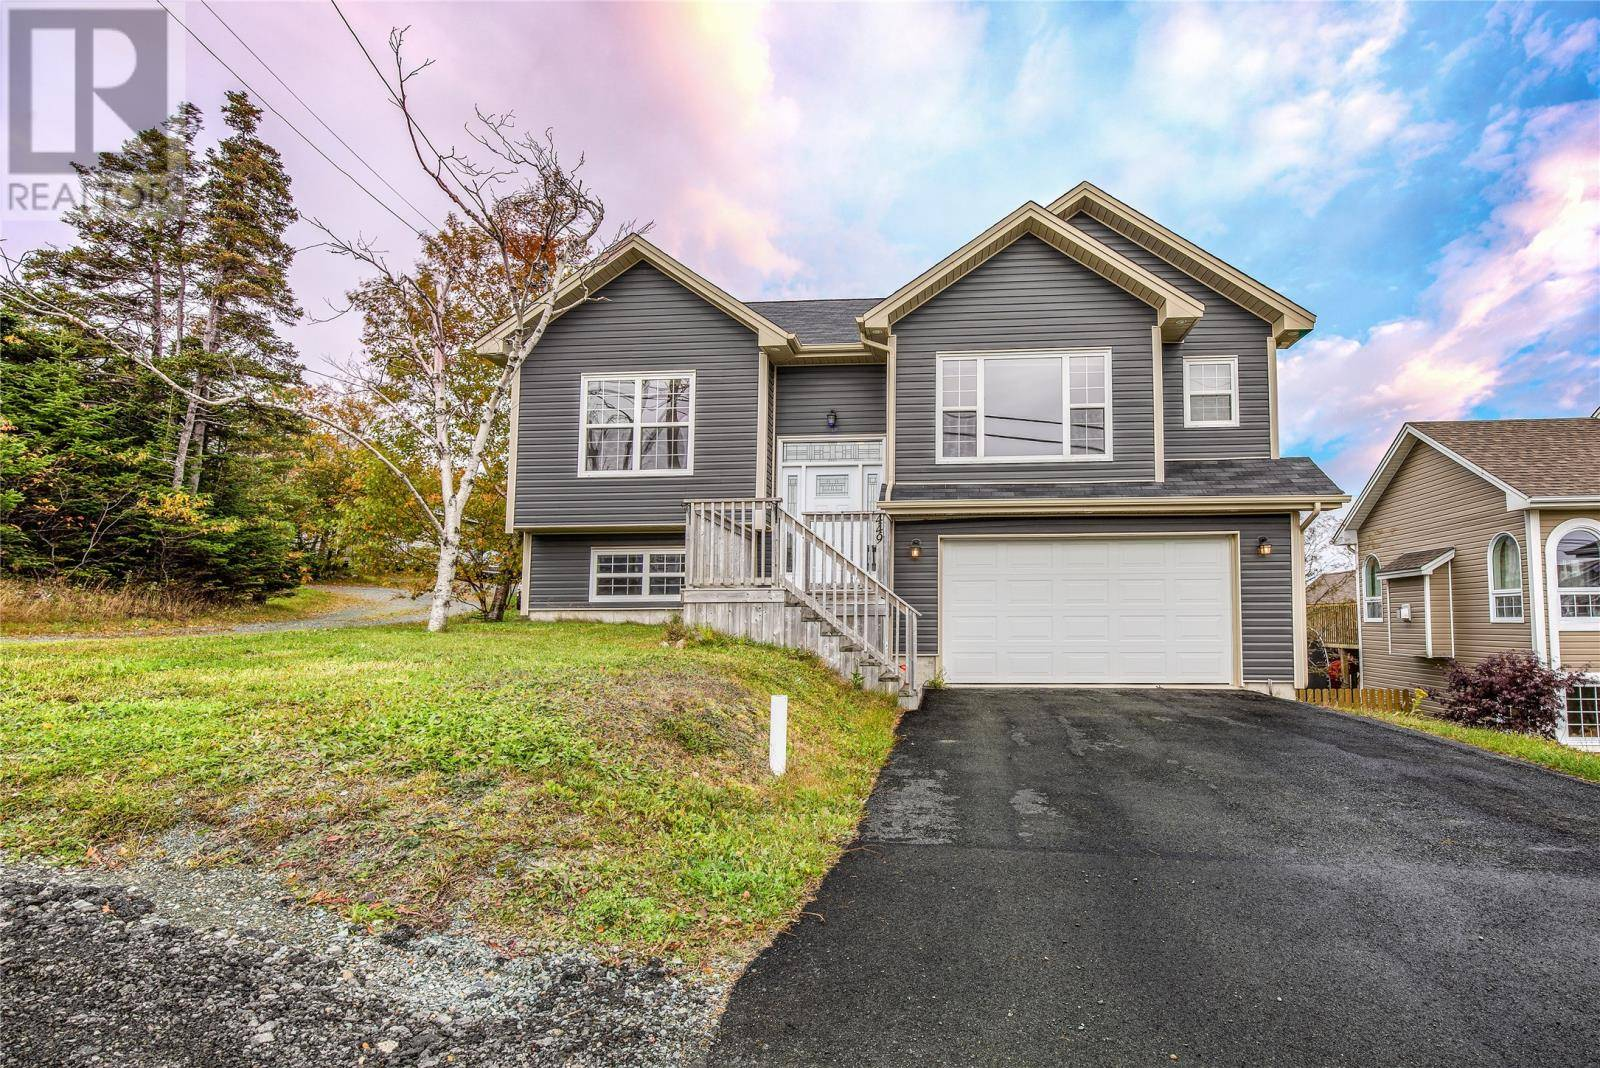 House for sale at 449 Dogberry Hill Rd St. Philip's Newfoundland - MLS: 1205335